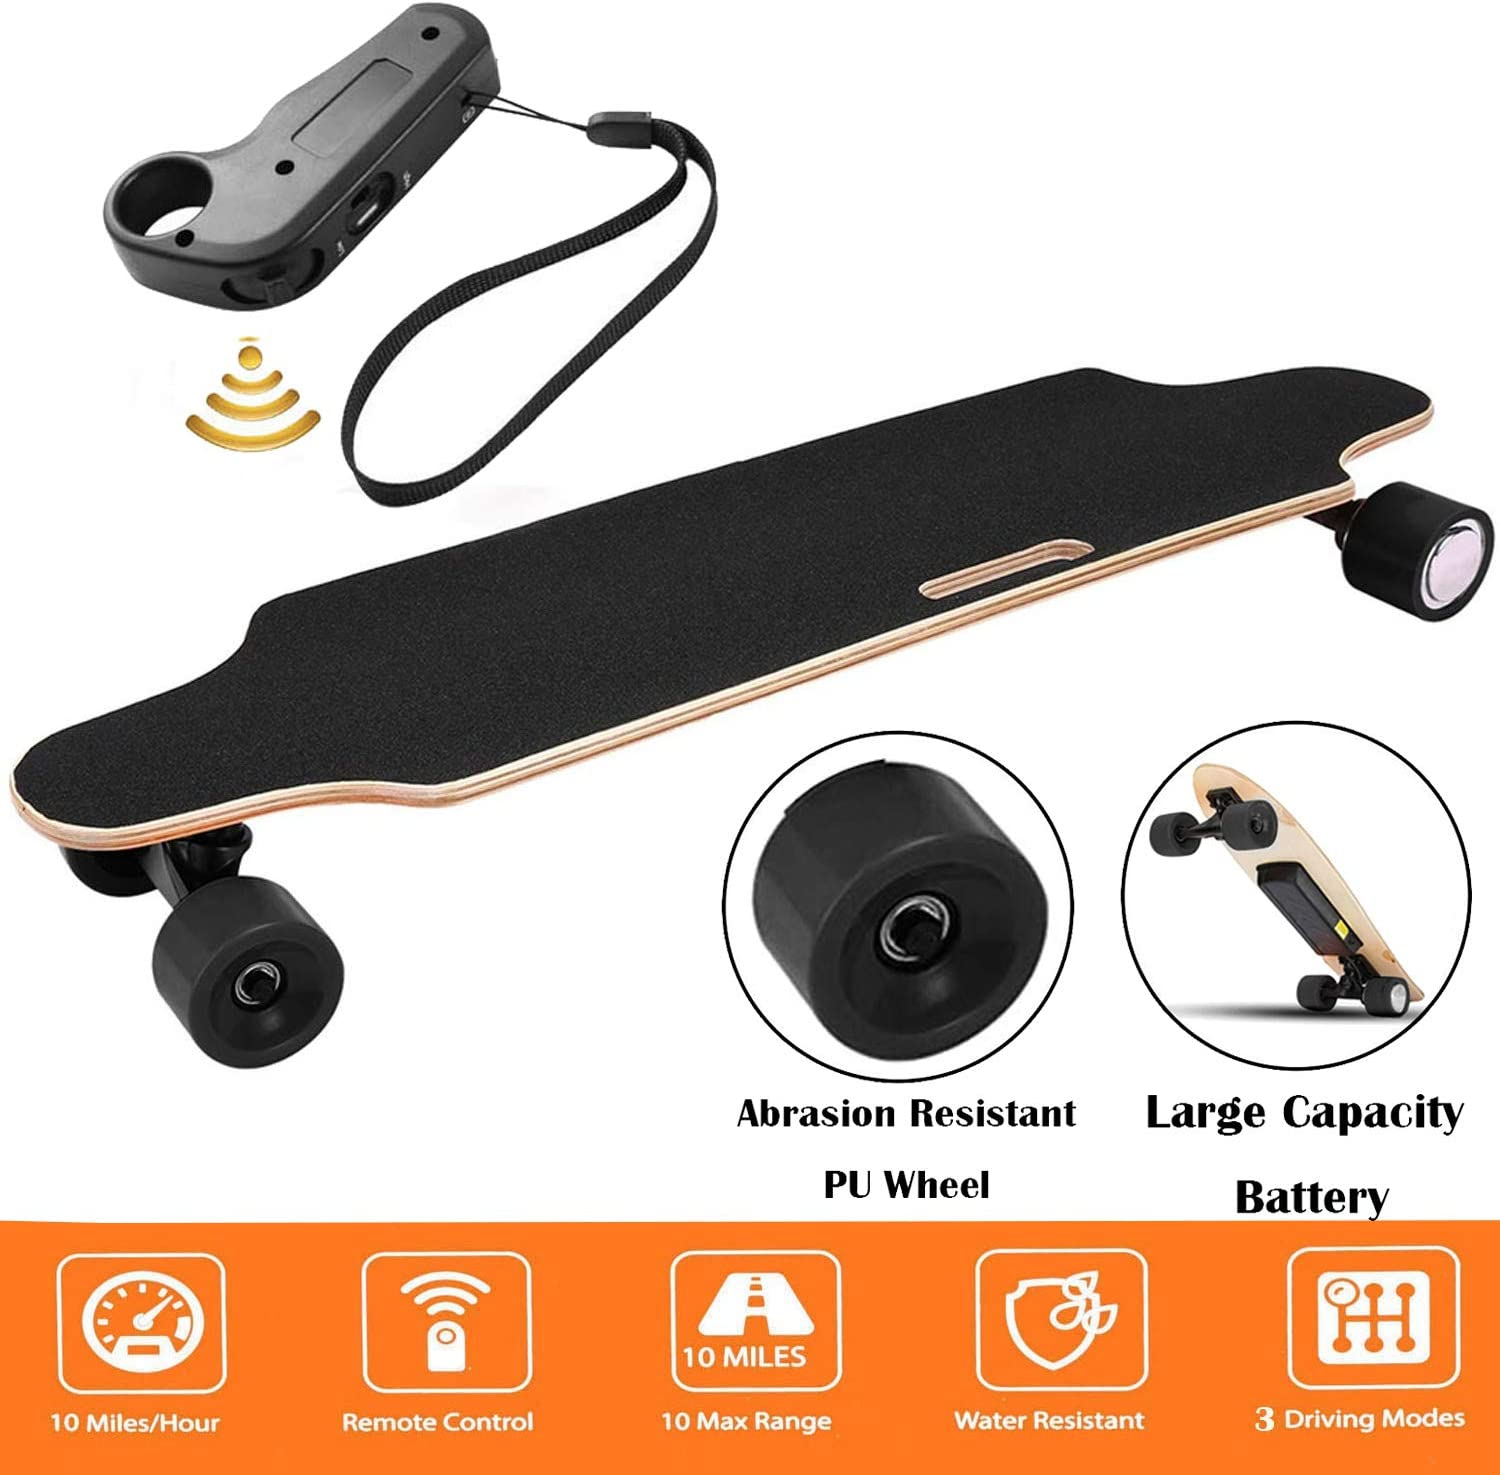 Aceshin Youth Electric Skateboard 12MPH Top Speed, 250W Motor 7 Layers Maple Longboard with Wireless Remote Control Electirc Board